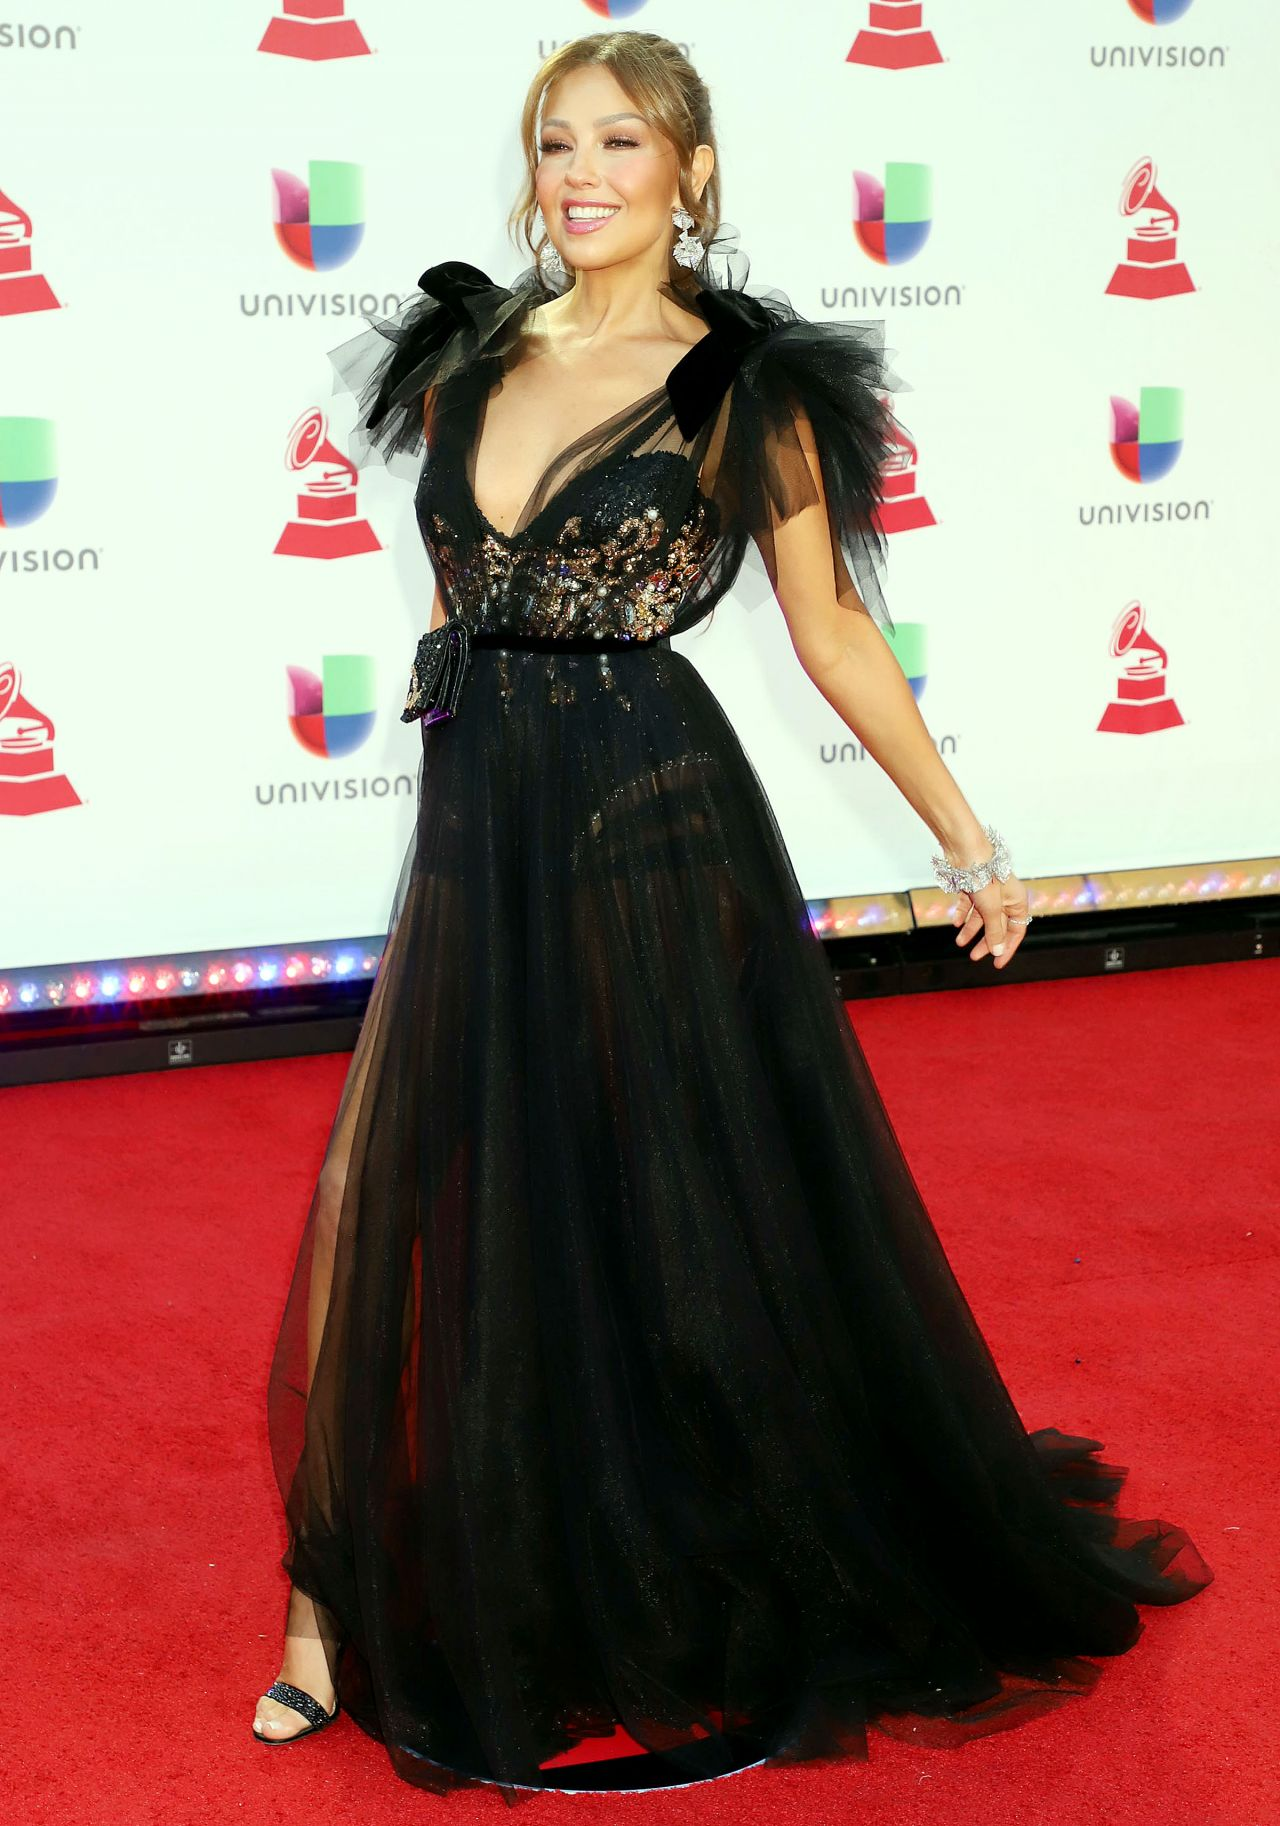 https://celebmafia.com/wp-content/uploads/2018/11/thalia-2018-latin-grammy-awards-1.jpg